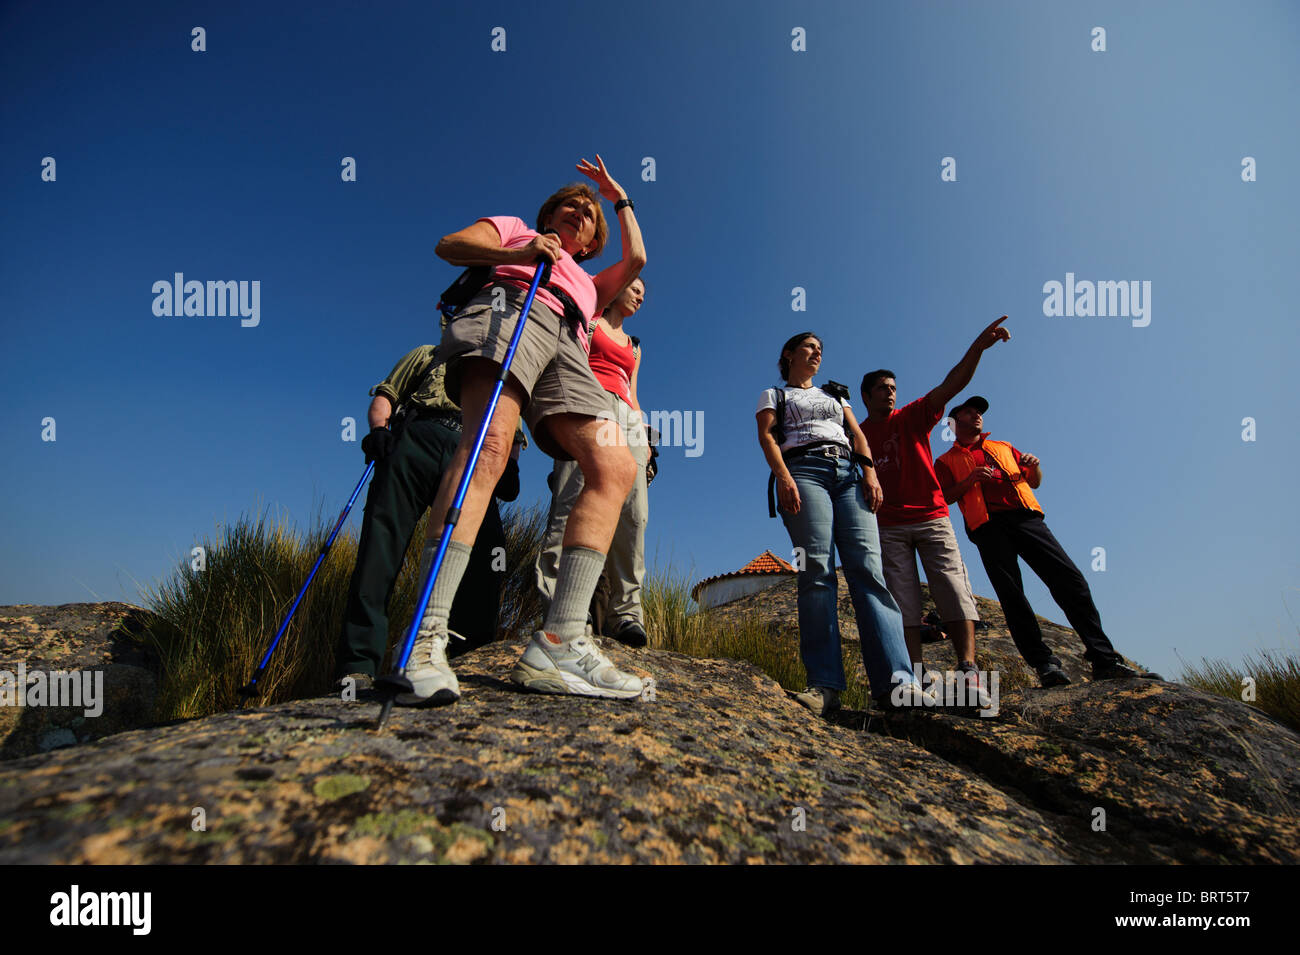 Group of hikers bird watching on top of a rock - Stock Image